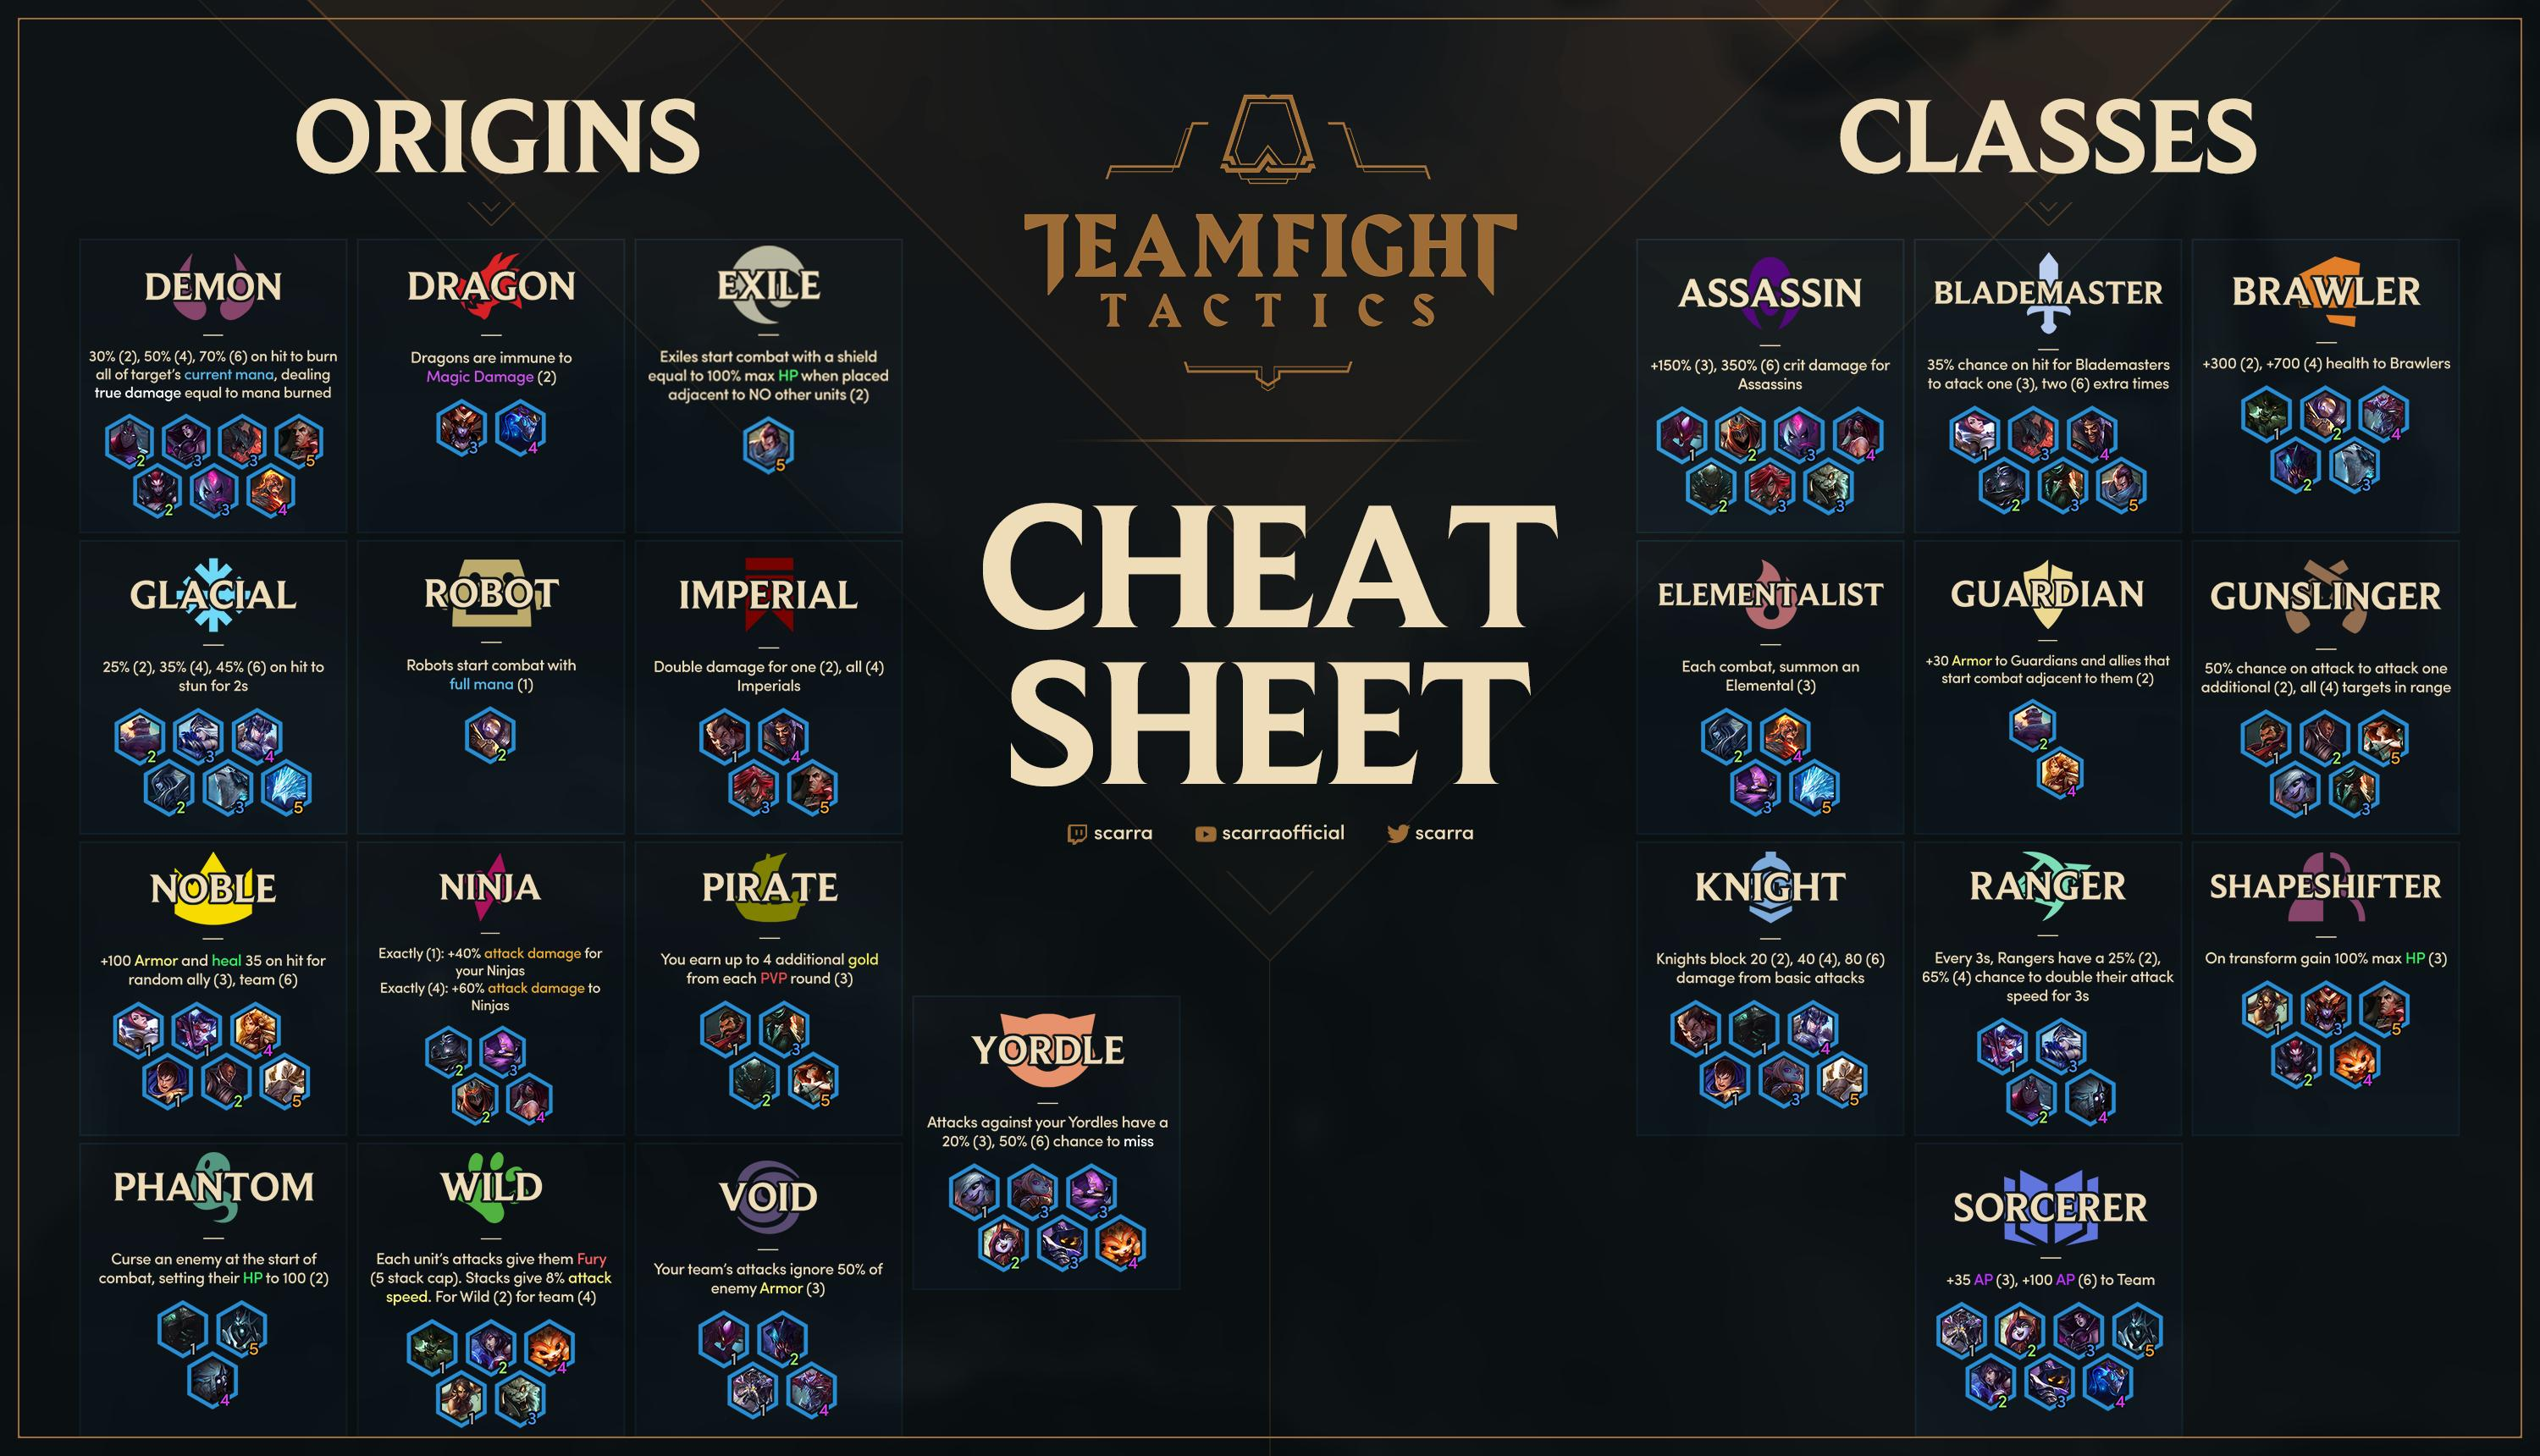 classes in TFT